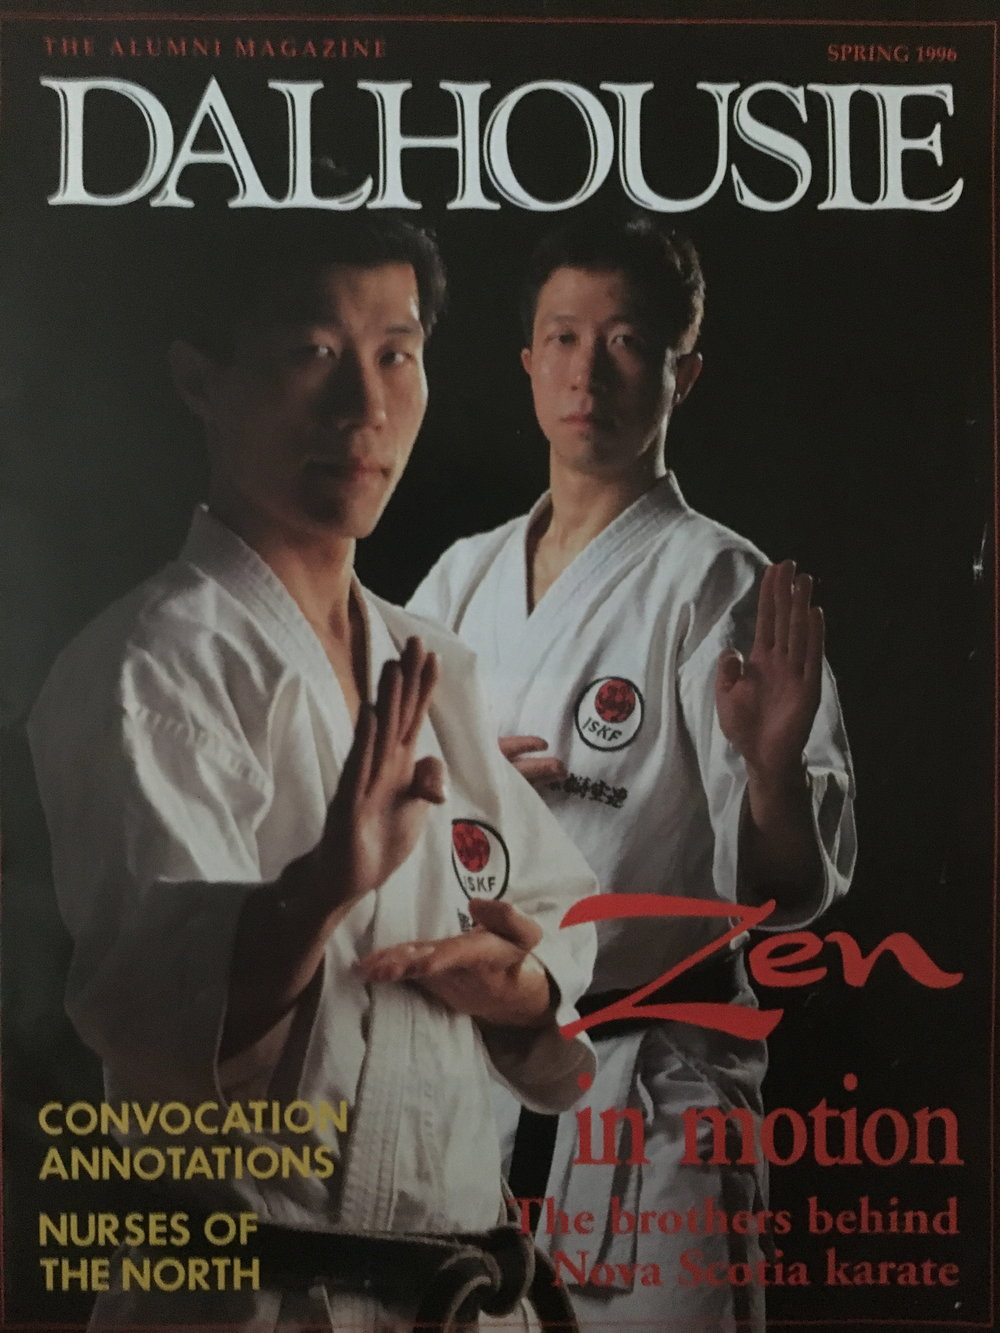 - Head instructor, Sensei Tony Tam, ISKF Certified 8th degree black belt and Dal alumnus ('82 BComm/'85 LLB), founded the non profit school (dojo) in 1979  and started the dojo in the Studley Gym on campus. It is now  located  in the King's College gym building. The dojo is dedicated to promoting karate to students, faculty, and staff. Vice Head Instructor is Dal alumnus Sensei Danny Tam('85 DDS), and also an ISKF Certified 8th degree black belt. Sensei Tams and many others can attest to the benefits of karate to university and post-university life. We have had students and faculty from nearly all departments and disciplines, trained thousands of students, and graduated hundreds of black belts over the past 39 years. While we do not pressure students to compete, we also provide the opportunity to compete at all levels.  Dal almunus Sensei Andy Allen, 7th degree black belt is the current  ISKF World Senior Kata Champion.